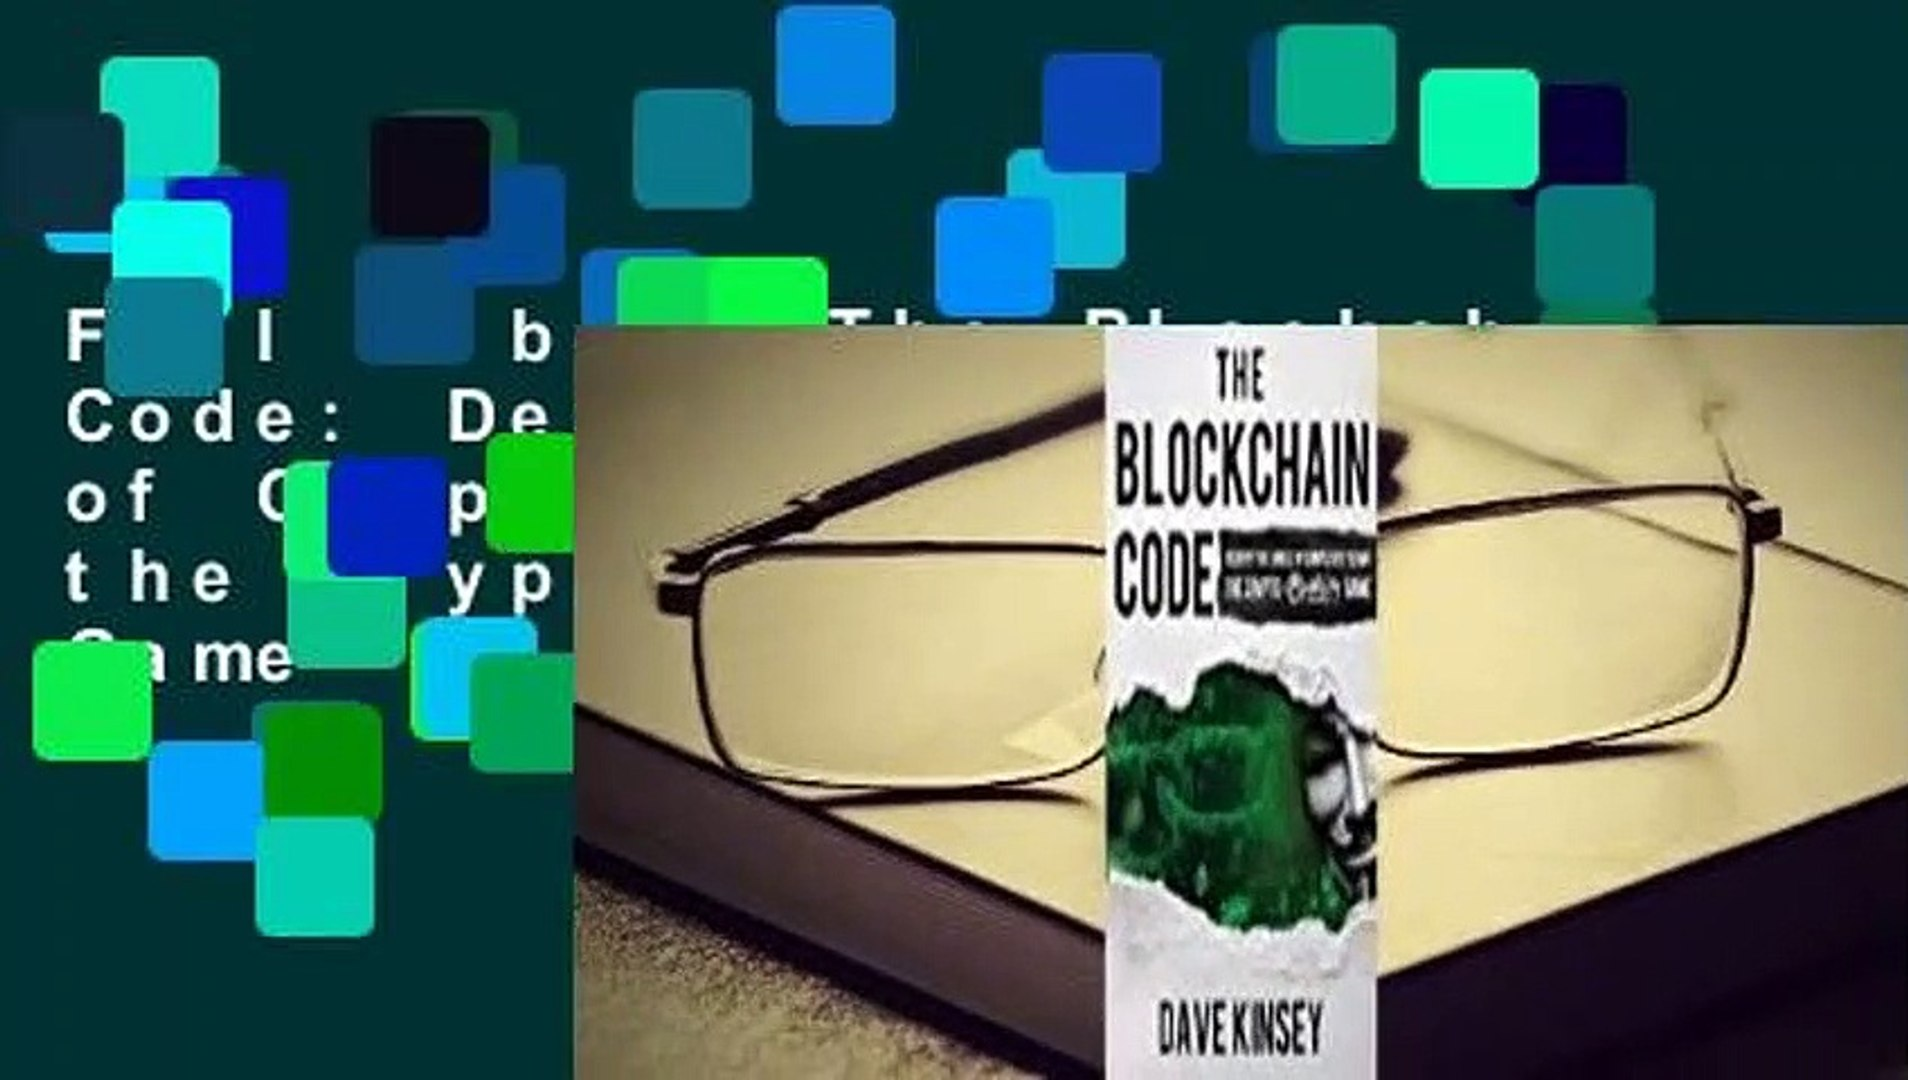 Full E-book The Blockchain Code: Decrypt the Jungle of Complexity to Win the Crypto-Anarchy Game